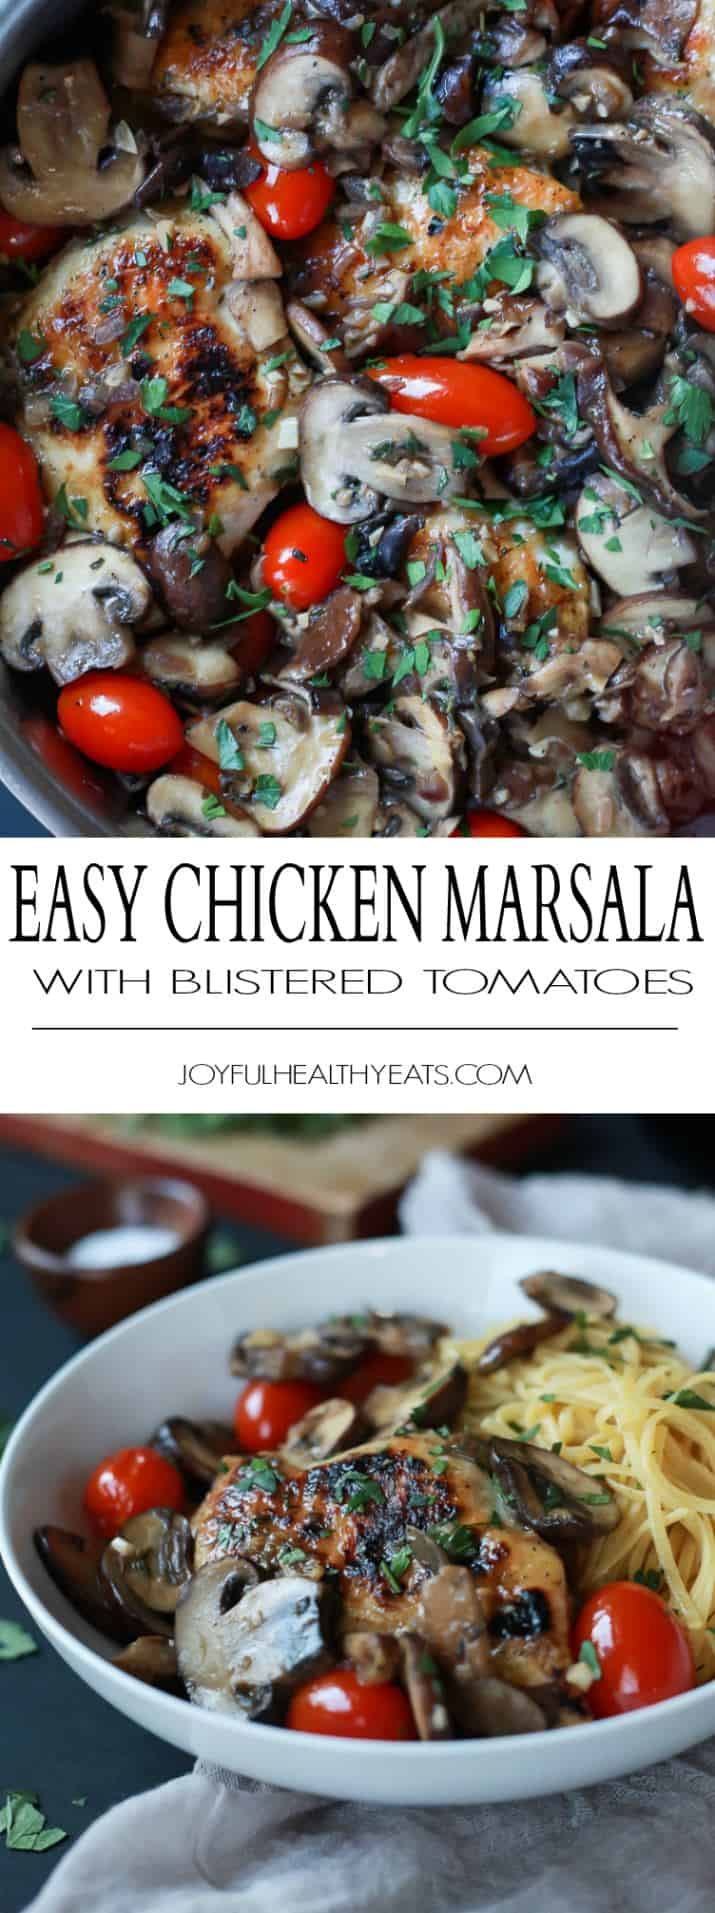 Easy Chicken Marsala with Blistered Tomatoes recipe collage